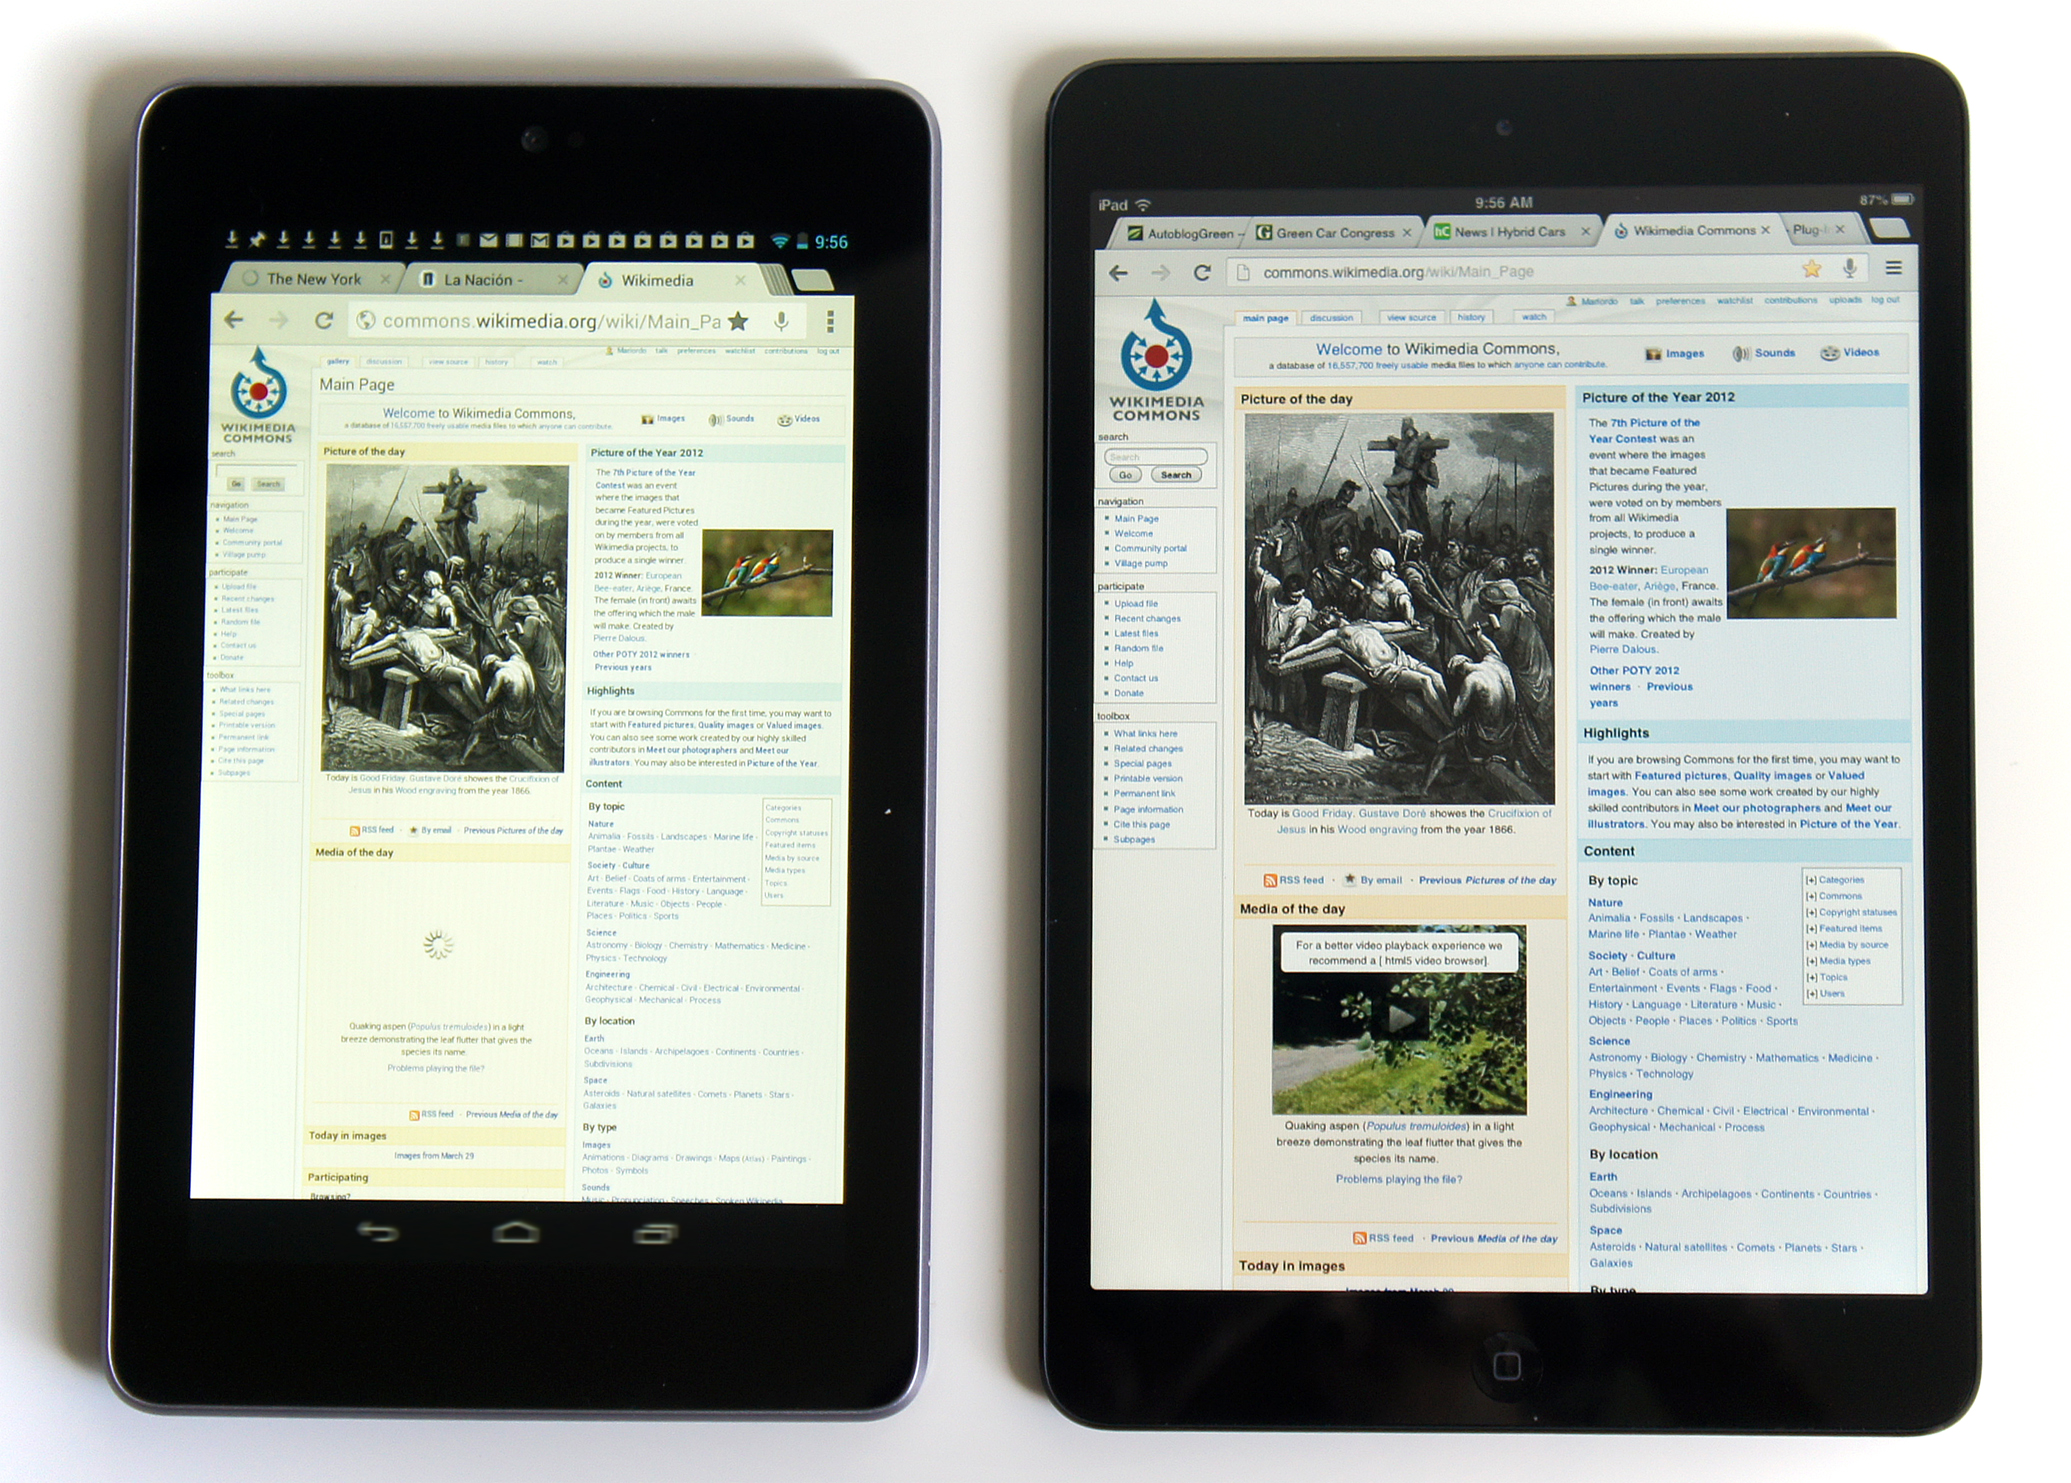 Ipad Comparison Chart: Wikimedia iPad Mini 6 Google Nexus 7 tablets 03 2013 6234.jpg ,Chart